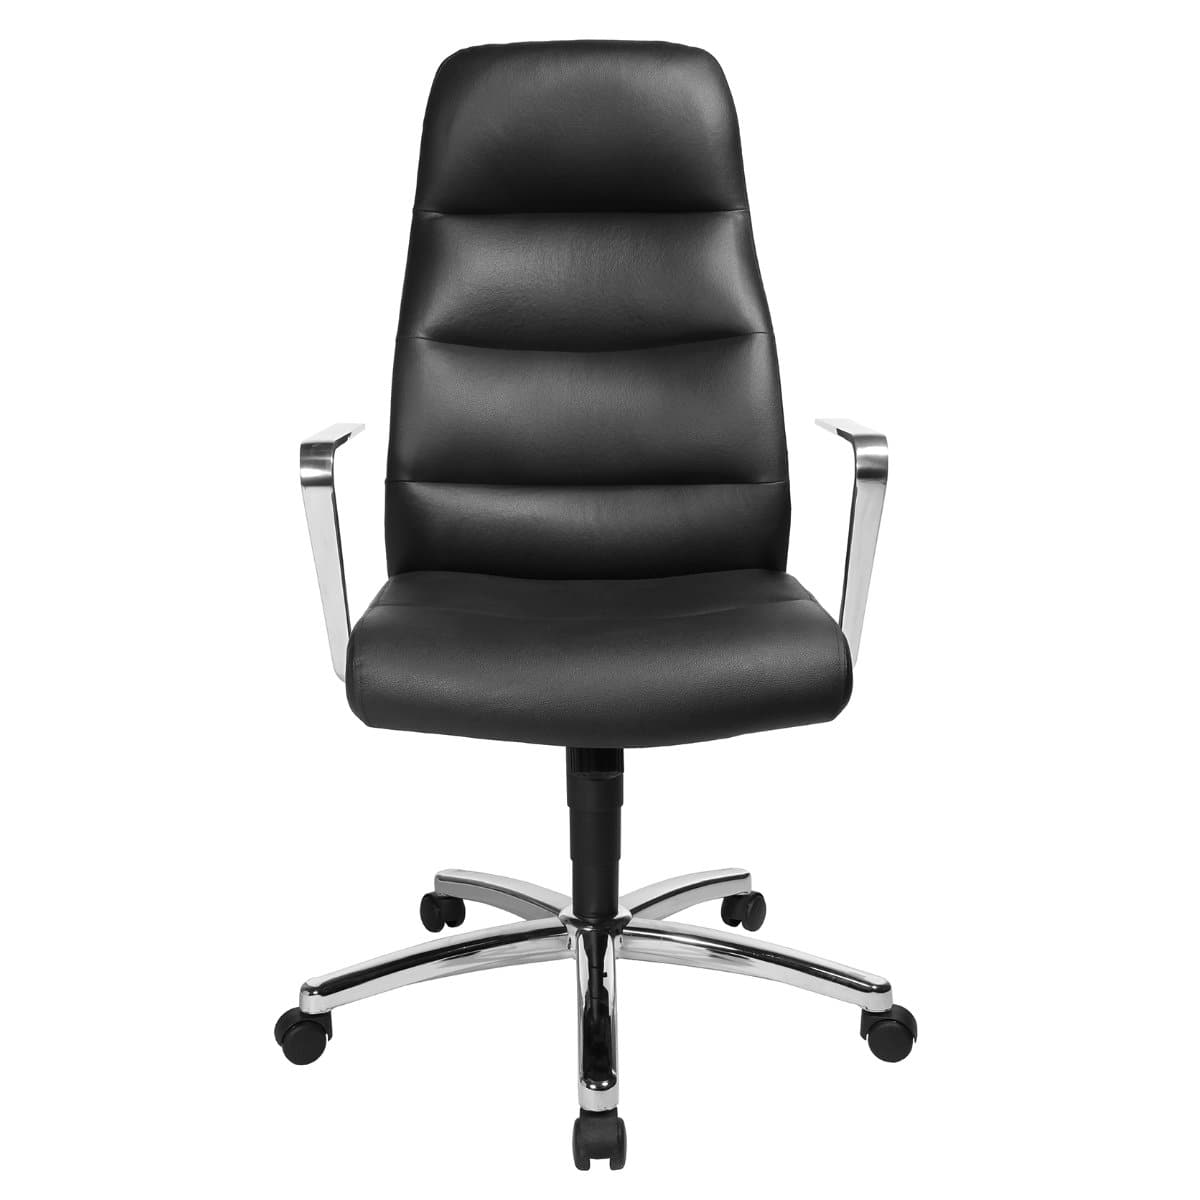 Topstar CHAIRMAN 70 Professional Executive Chair, Leather Black